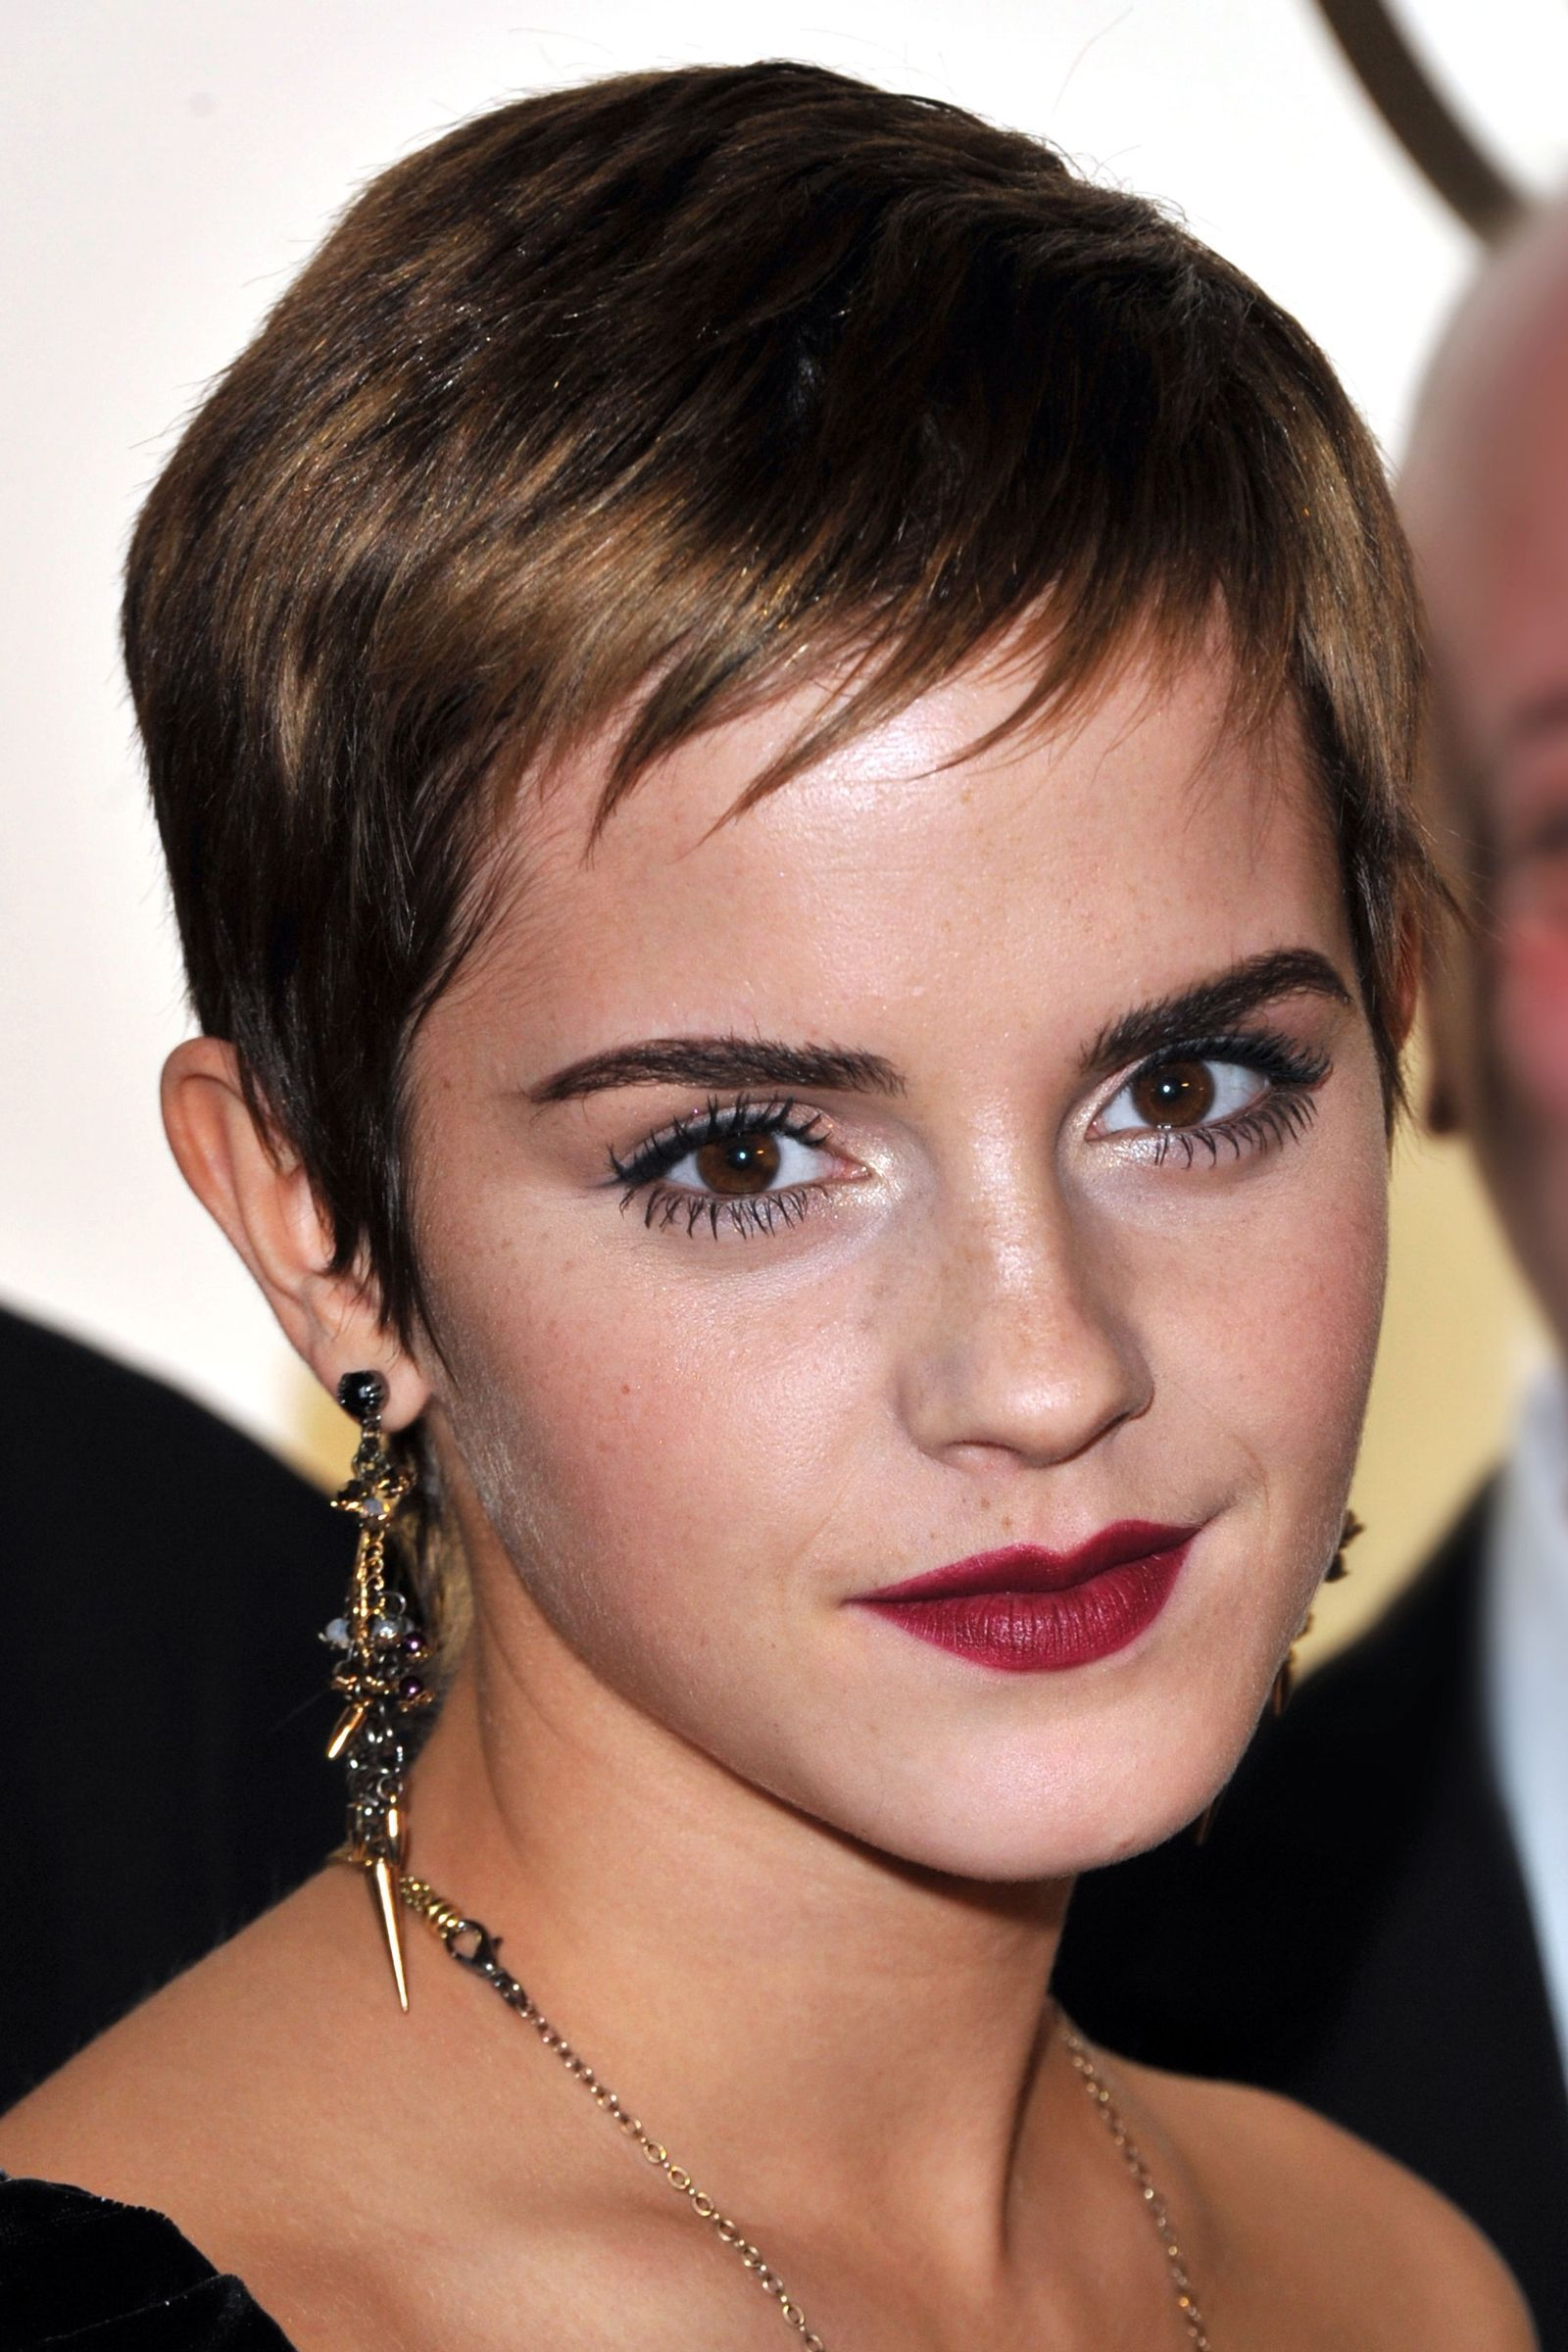 Haircut styles short on sides long on top the top pixie haircuts of all time  emma watson pixies and haircut